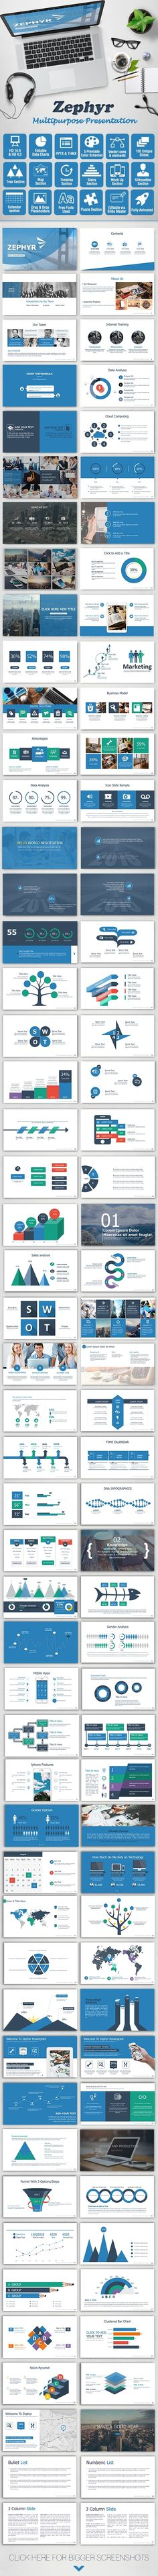 Multipurpose powerpoint presentation template elva apresentao zephyr powerpoint presentation powerpoint templates toneelgroepblik Image collections